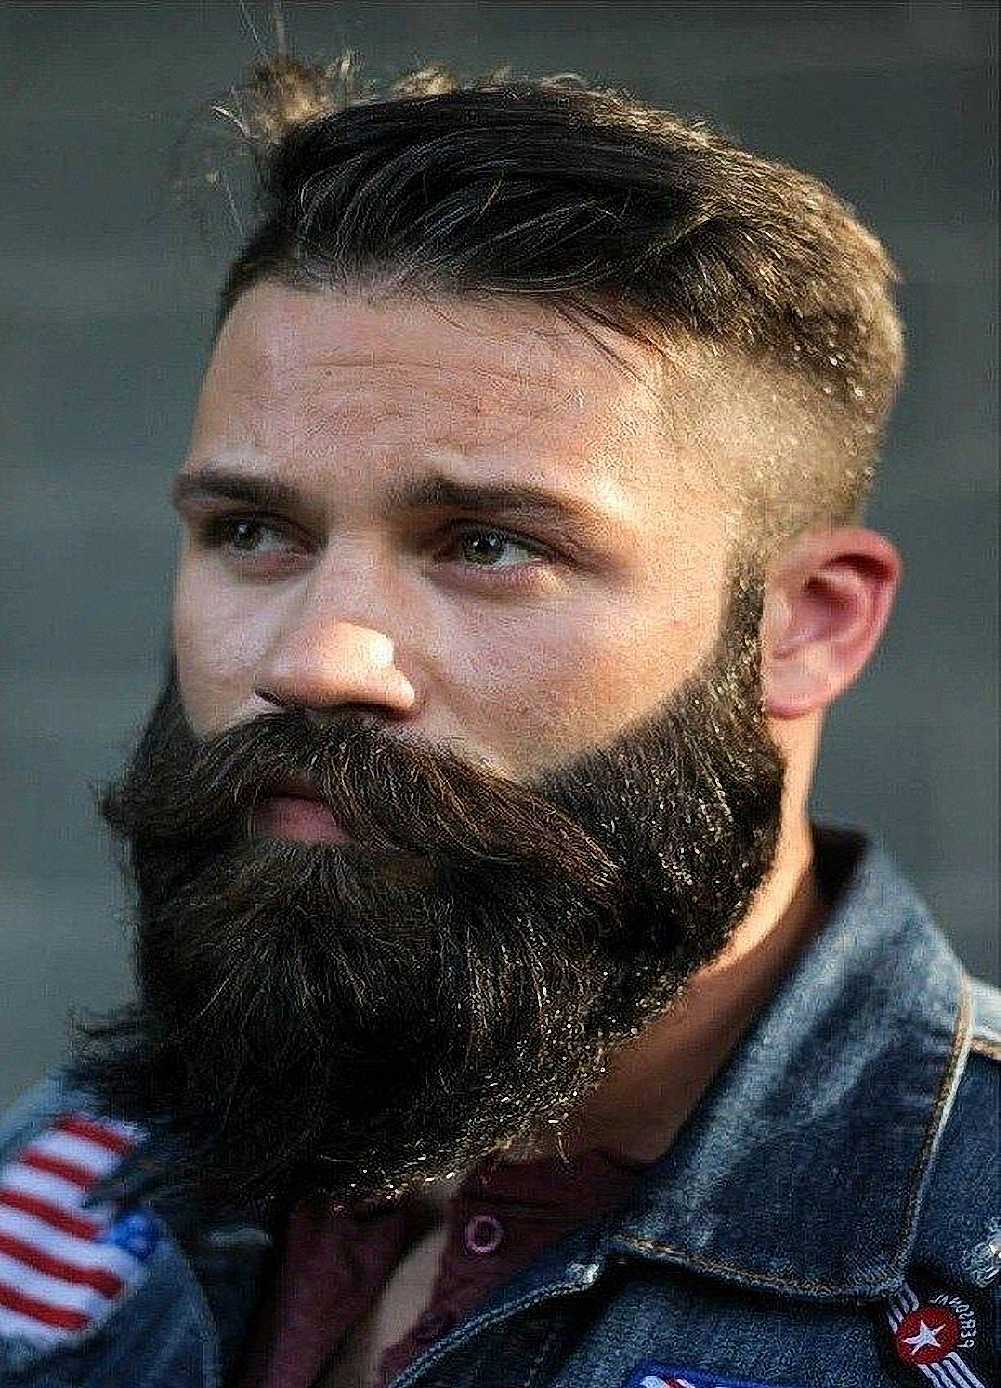 Fashionable Long Beard Hairstyle For Men Shave Hair Cut Hairstyle Design Retro Kraft Paper Poster Barber Shop Decoration A1 Painting Calligraphy Aliexpress